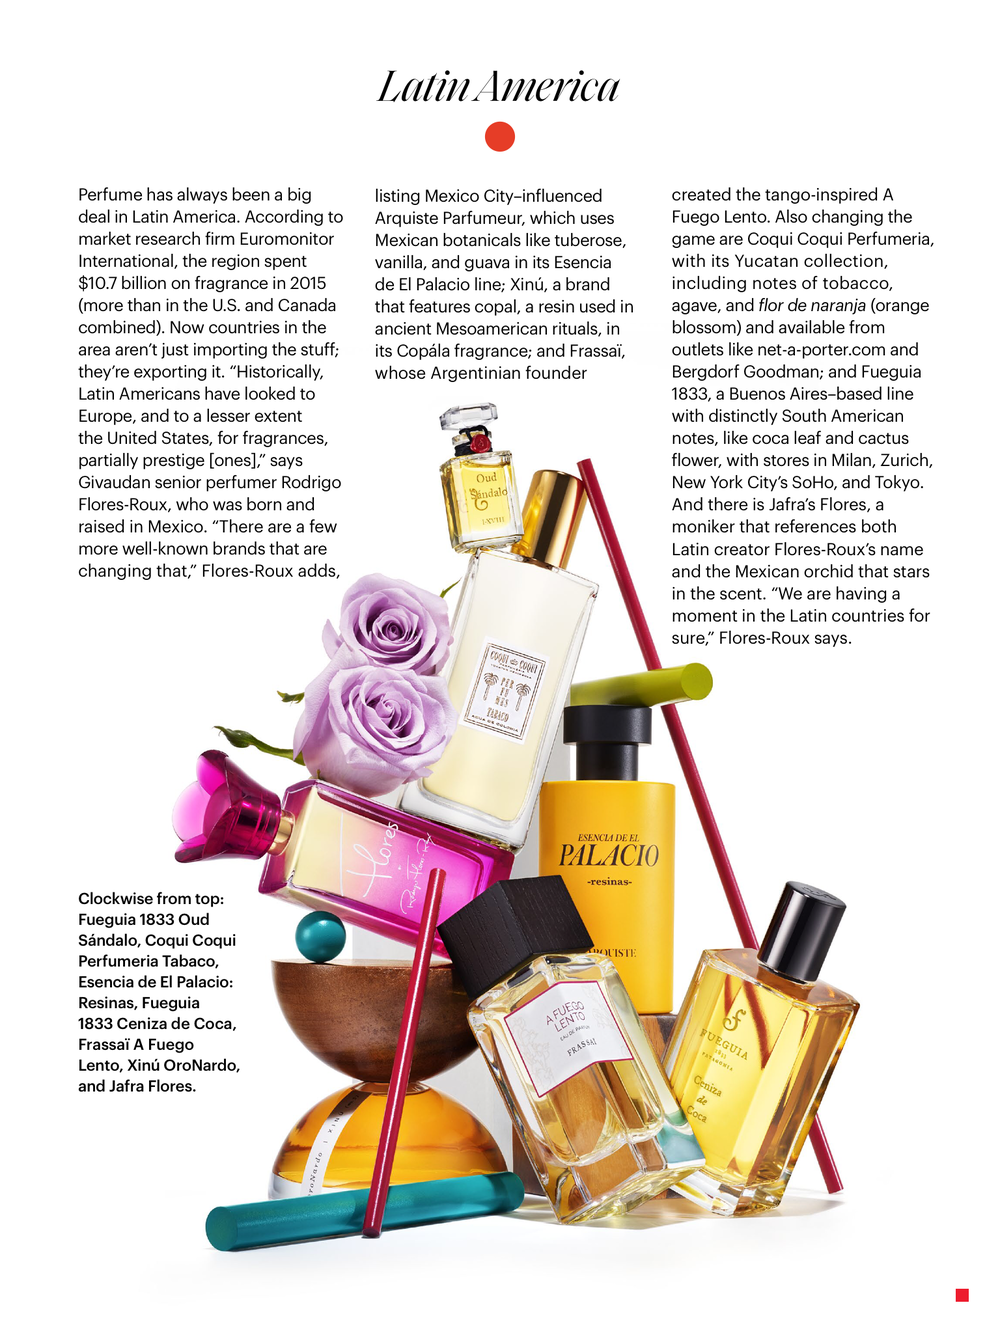 Allure magazine feature A Fuego Lento, FRASSAÏ Latin American scents